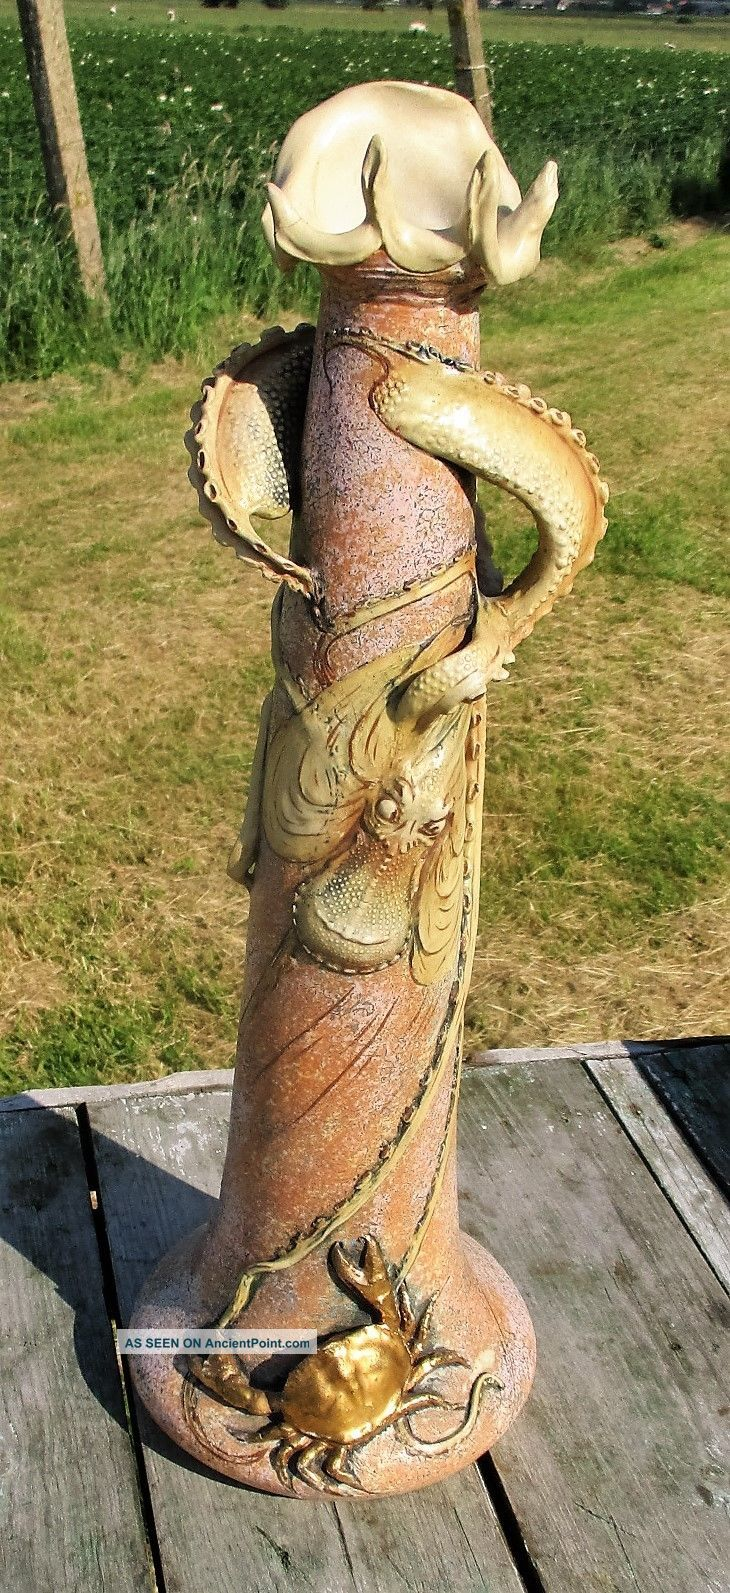 Antique Art Nouveau Ceramic Bohemian Amphora Octopus Vase Eduard Stellmacher Art Nouveau photo